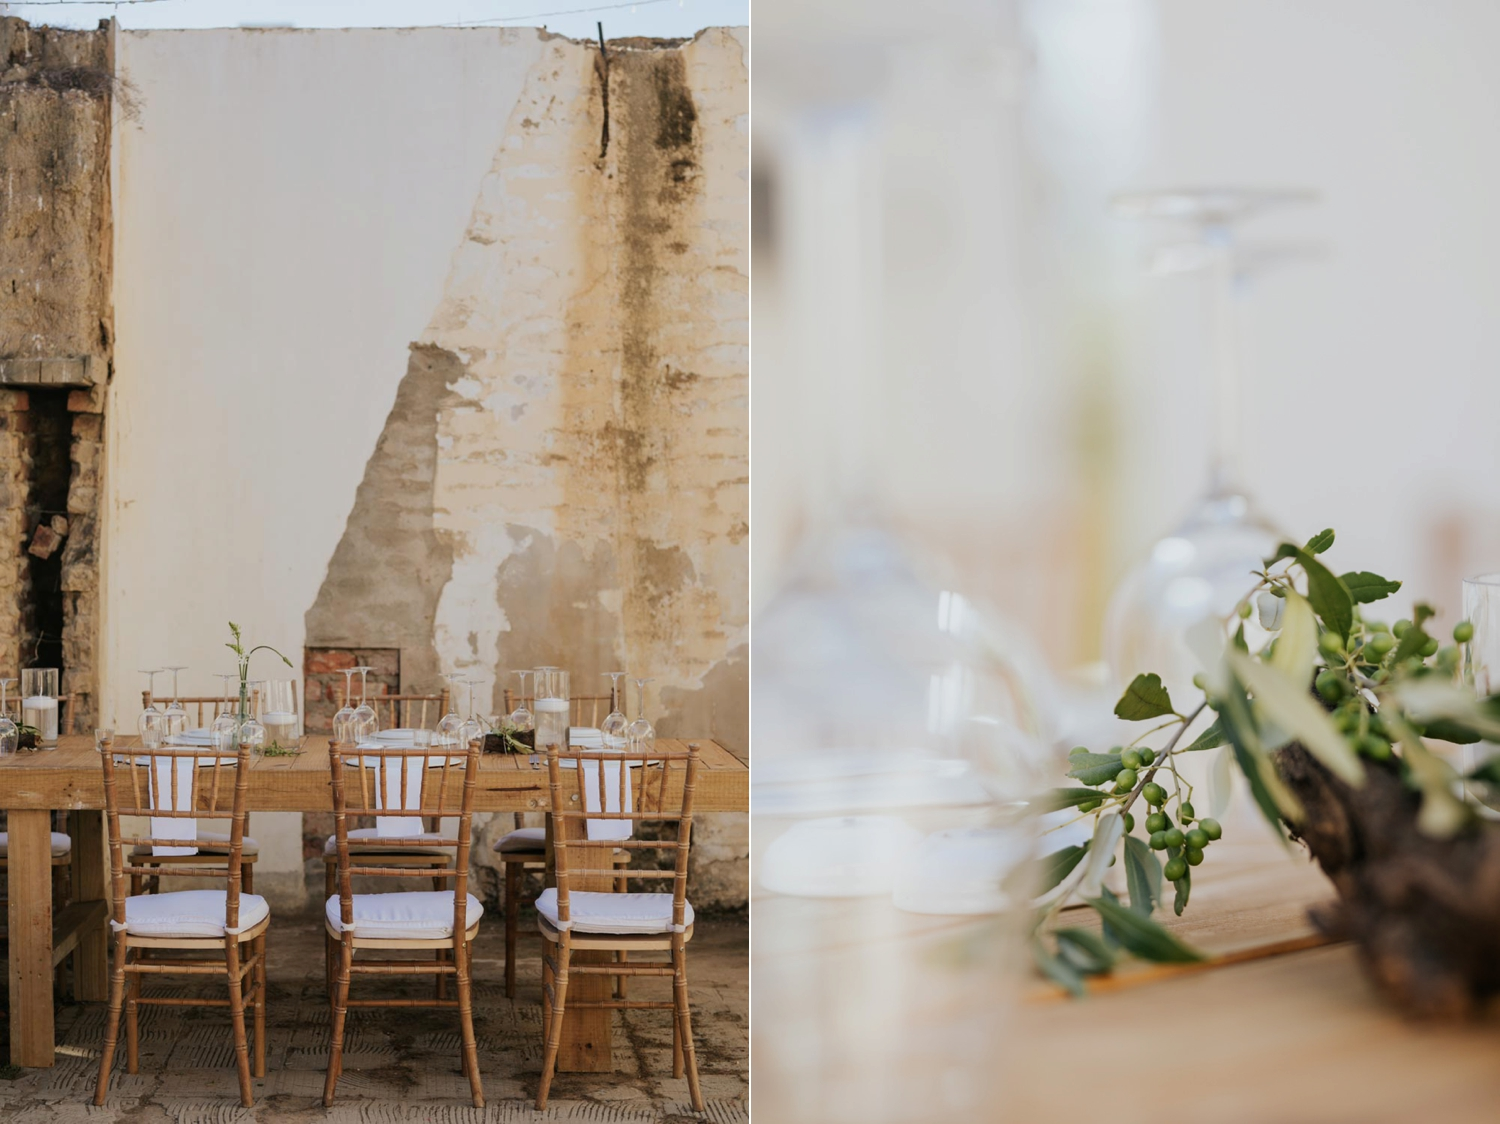 Simple wooden tables decorated with leaves, greenery and glass set in the ruins of an old house in the Western Cape.